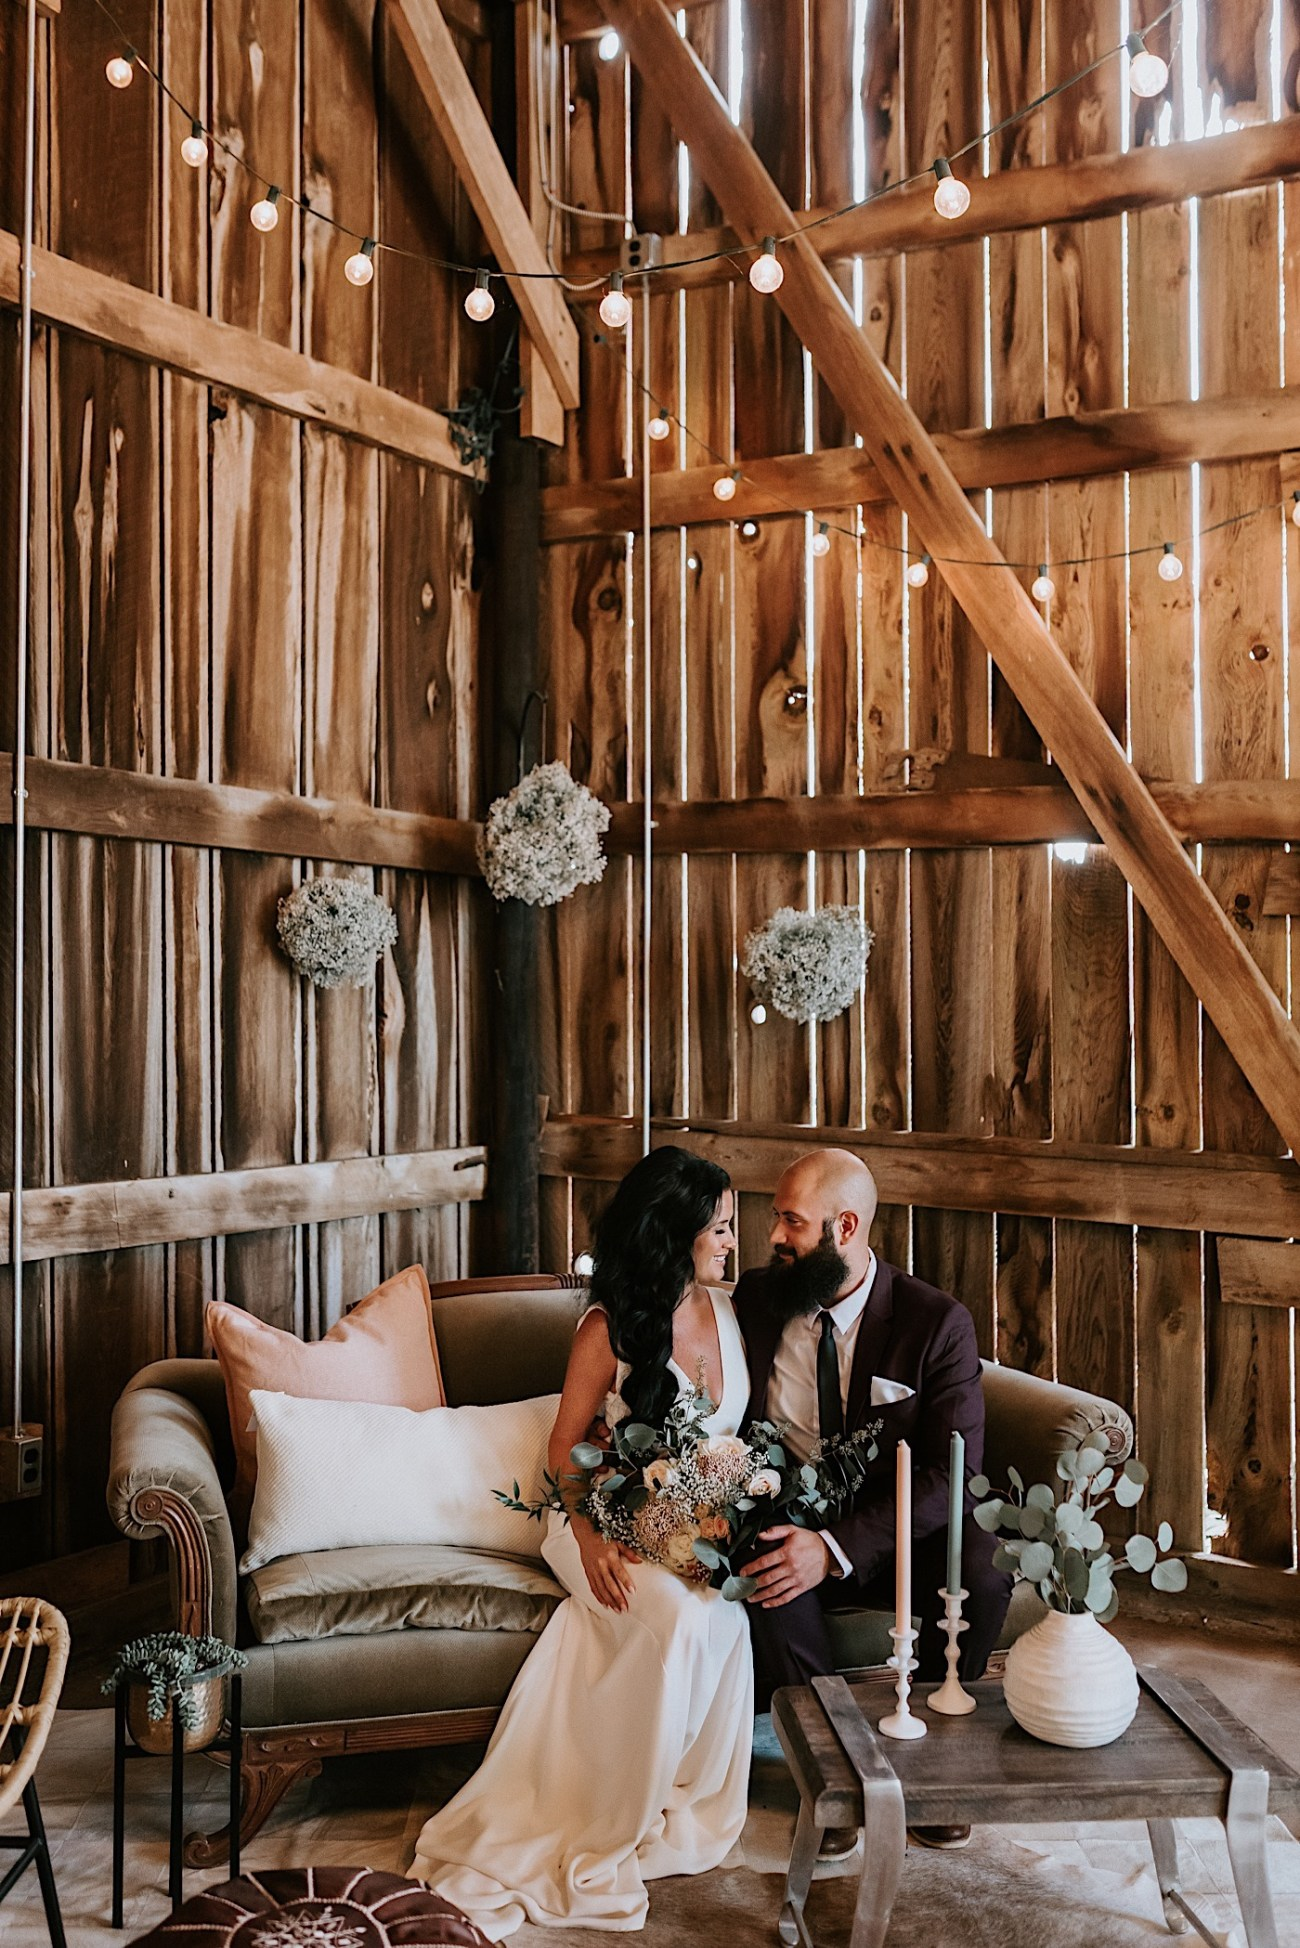 Gilbertsville Farmhouse Wedding Barn Inspiration Wedding Upstate New York Wedding Catskill Hudsonvalley Wedding 21